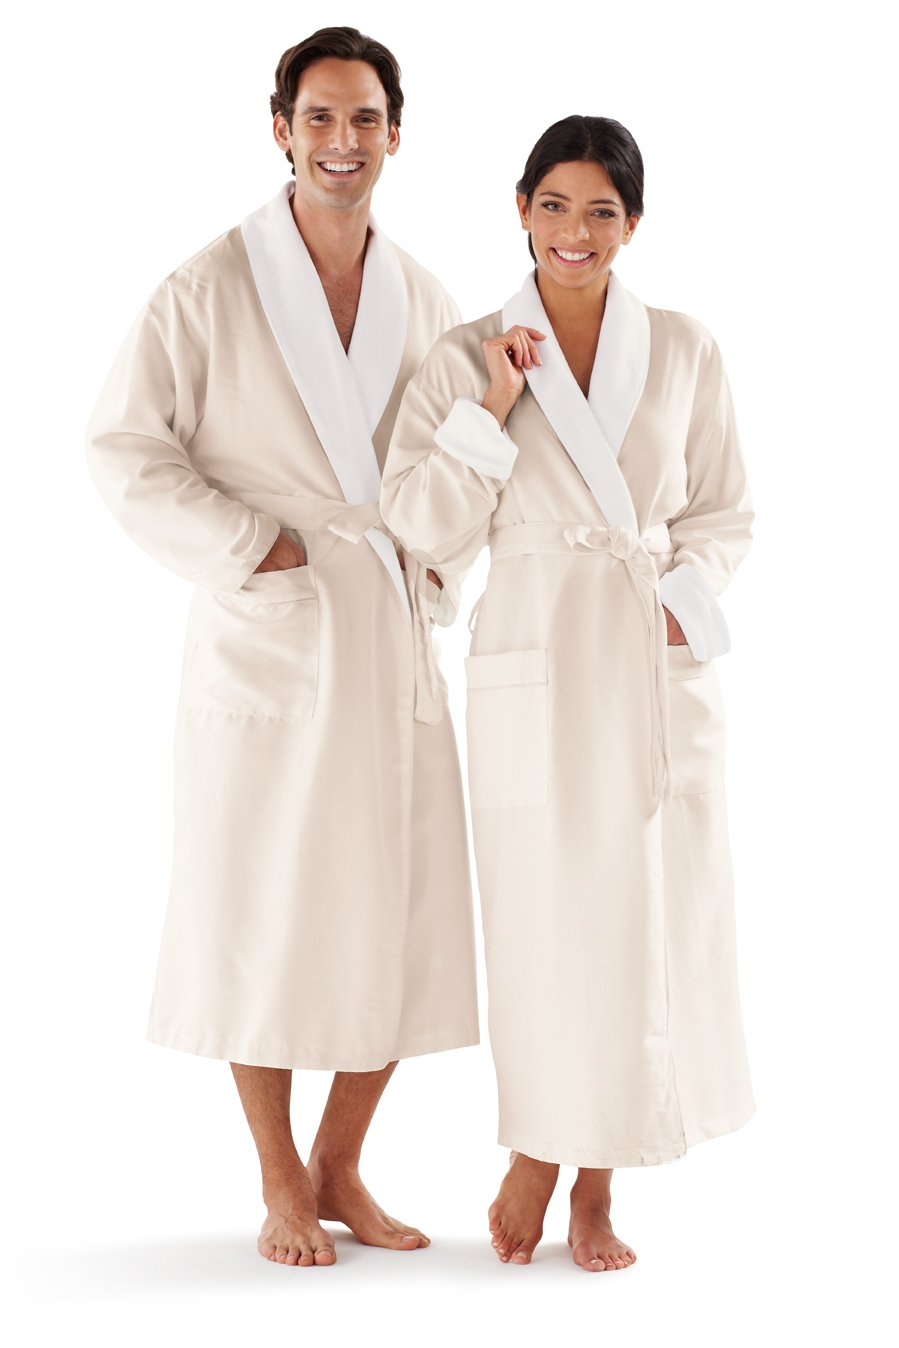 Boca Terry Women's and Men's Robe, Luxury Microfiber Eggshell Bathrobe, One Size Fits All